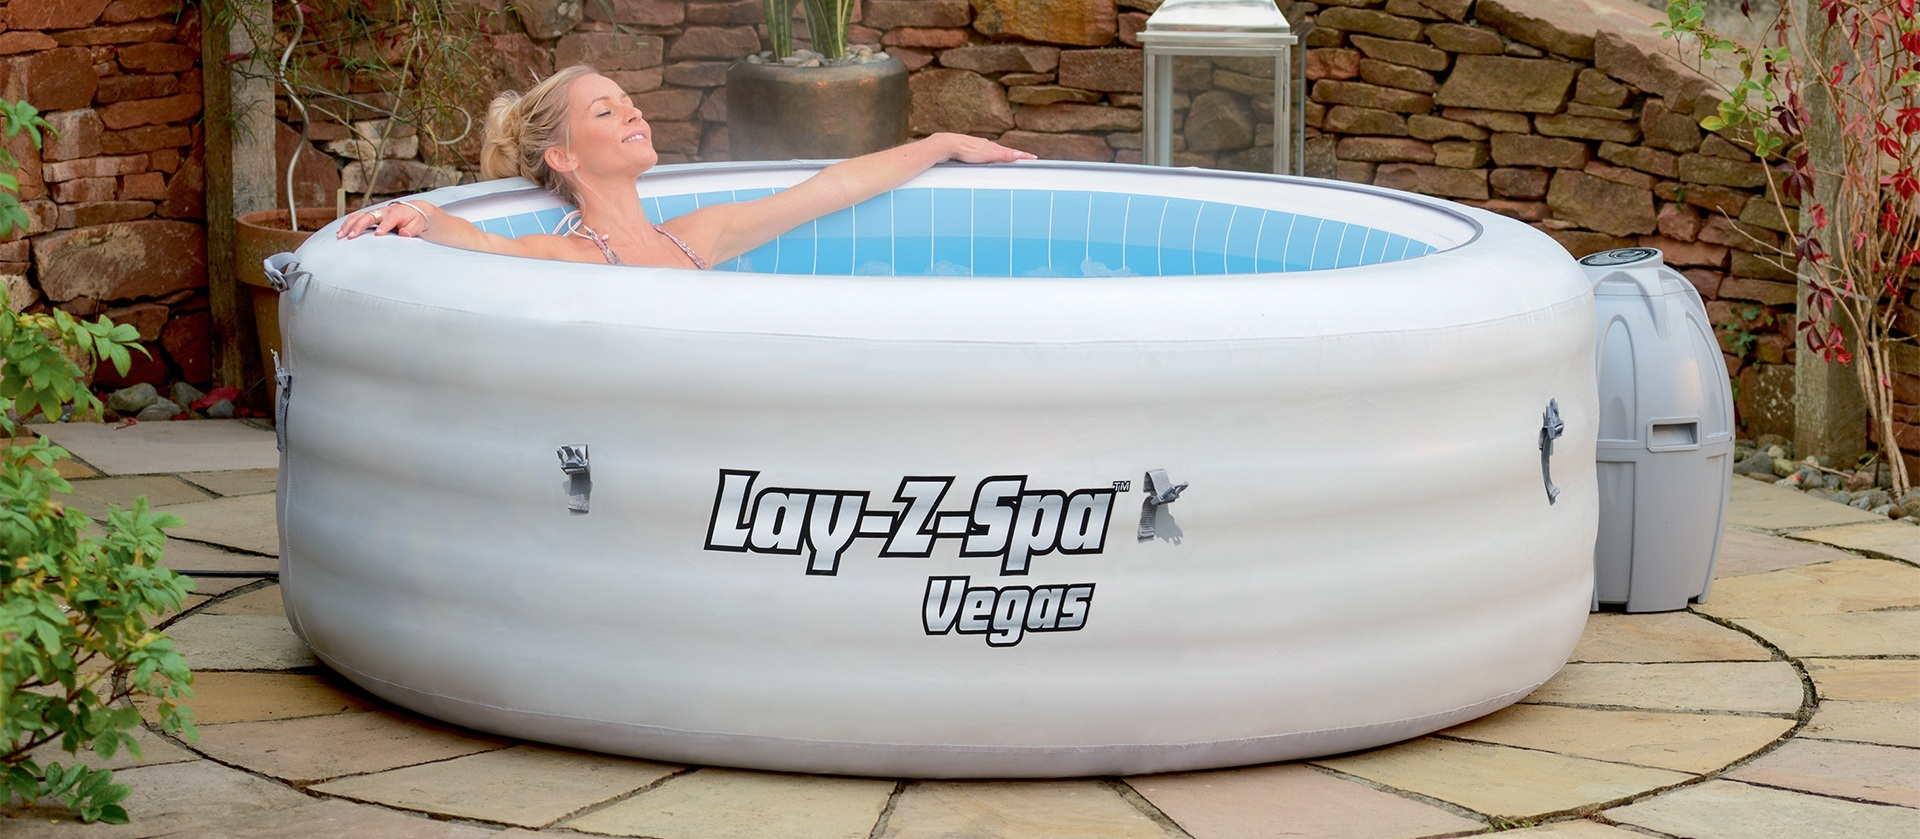 Lay-Z-Spa Model Vegas